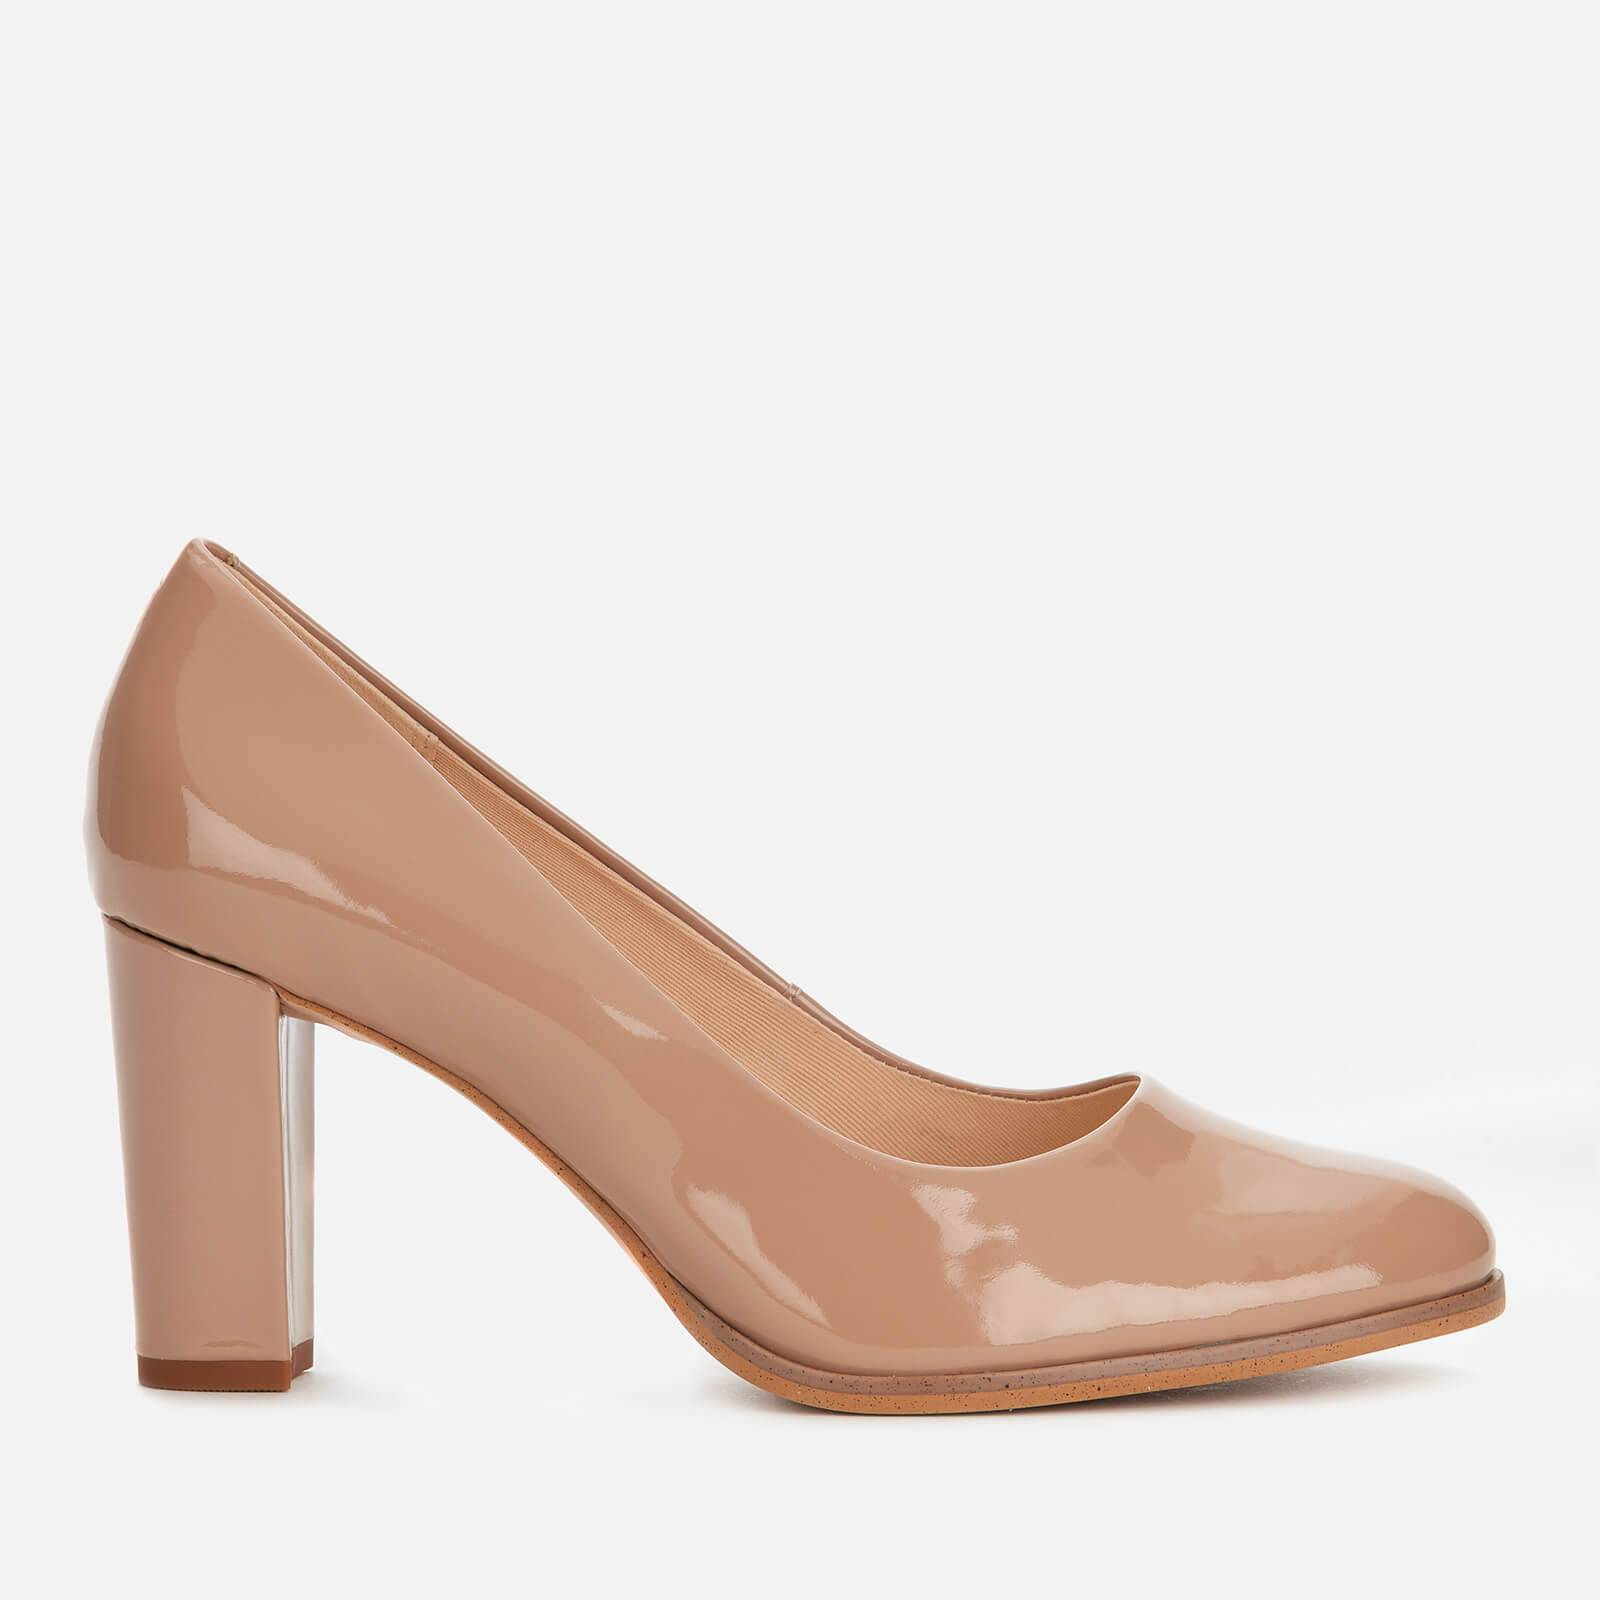 Clarks Women's Kaylin Cara Patent Court Shoes - Praline - UK 5